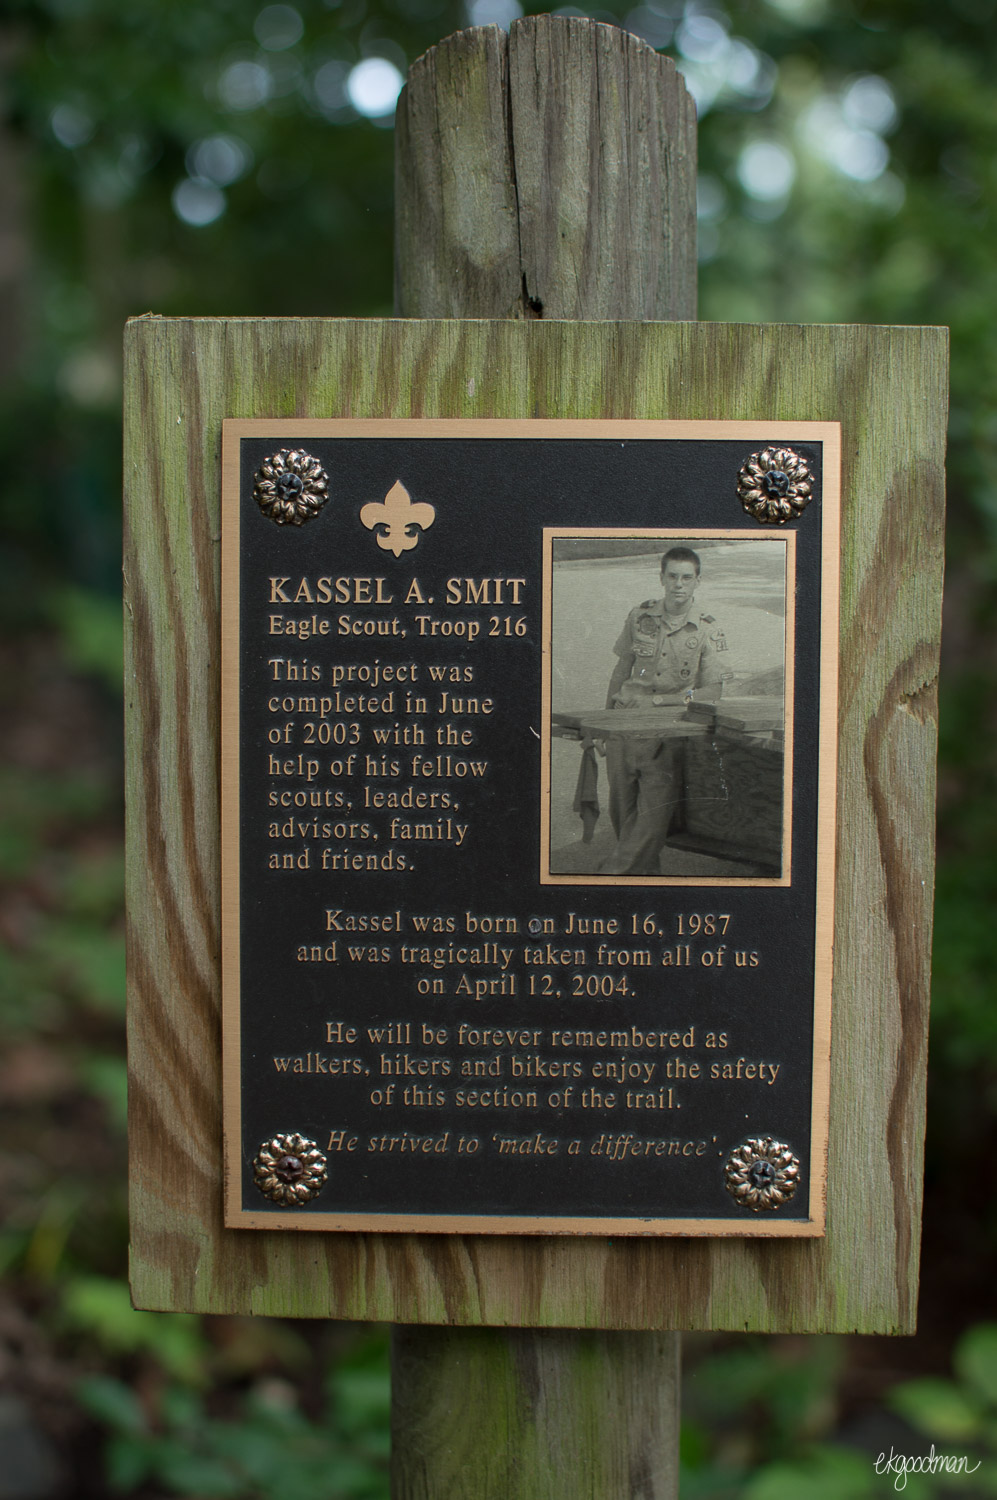 There are also a few boy scout projects, benches, and memorials along the lake trail.